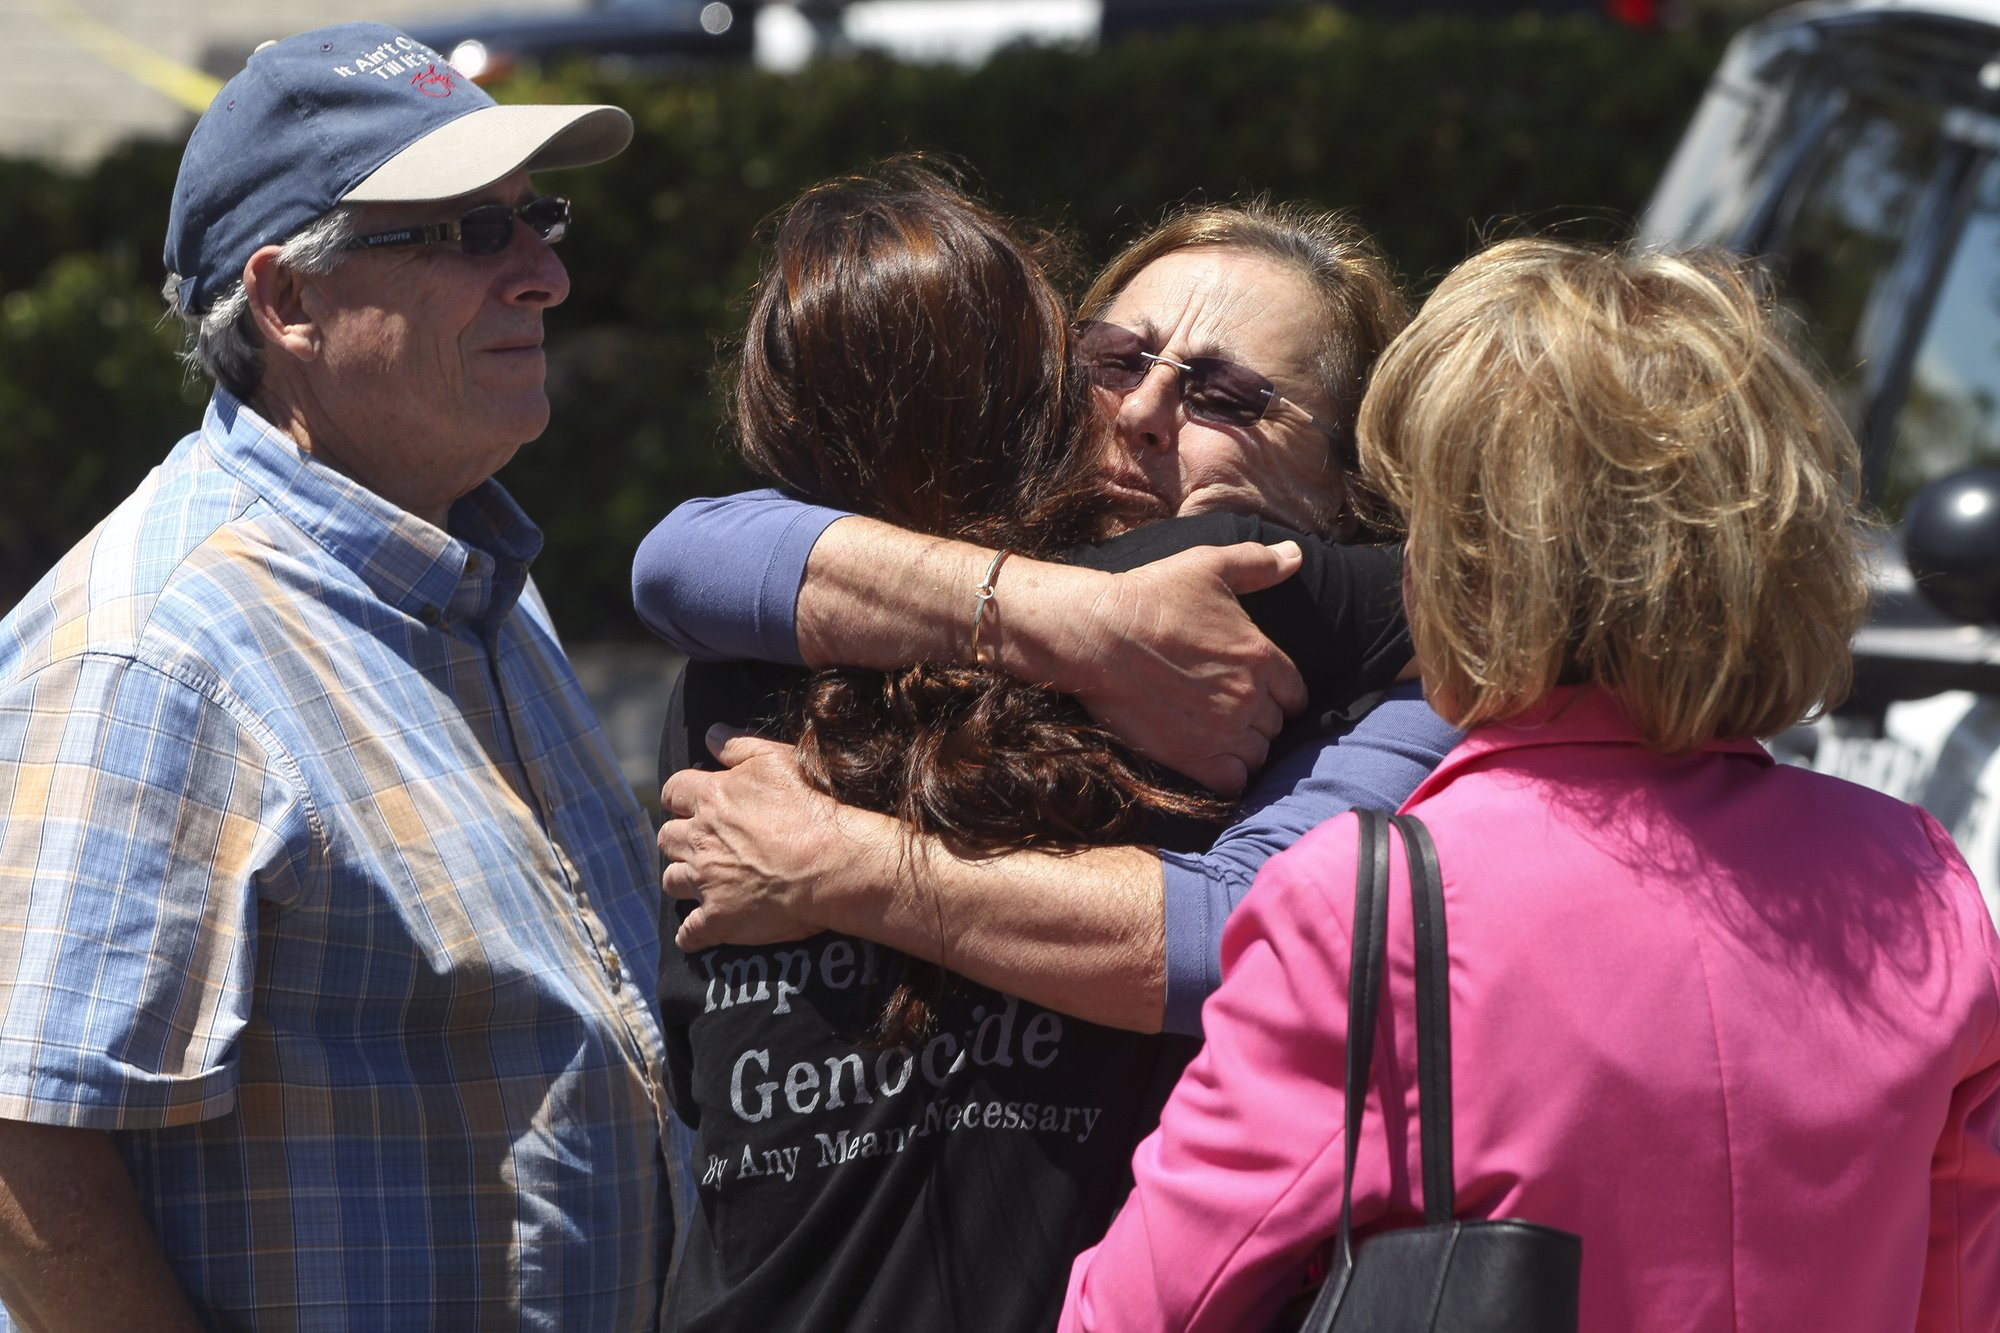 California synagogue shooting suspect identified as 19-year-old